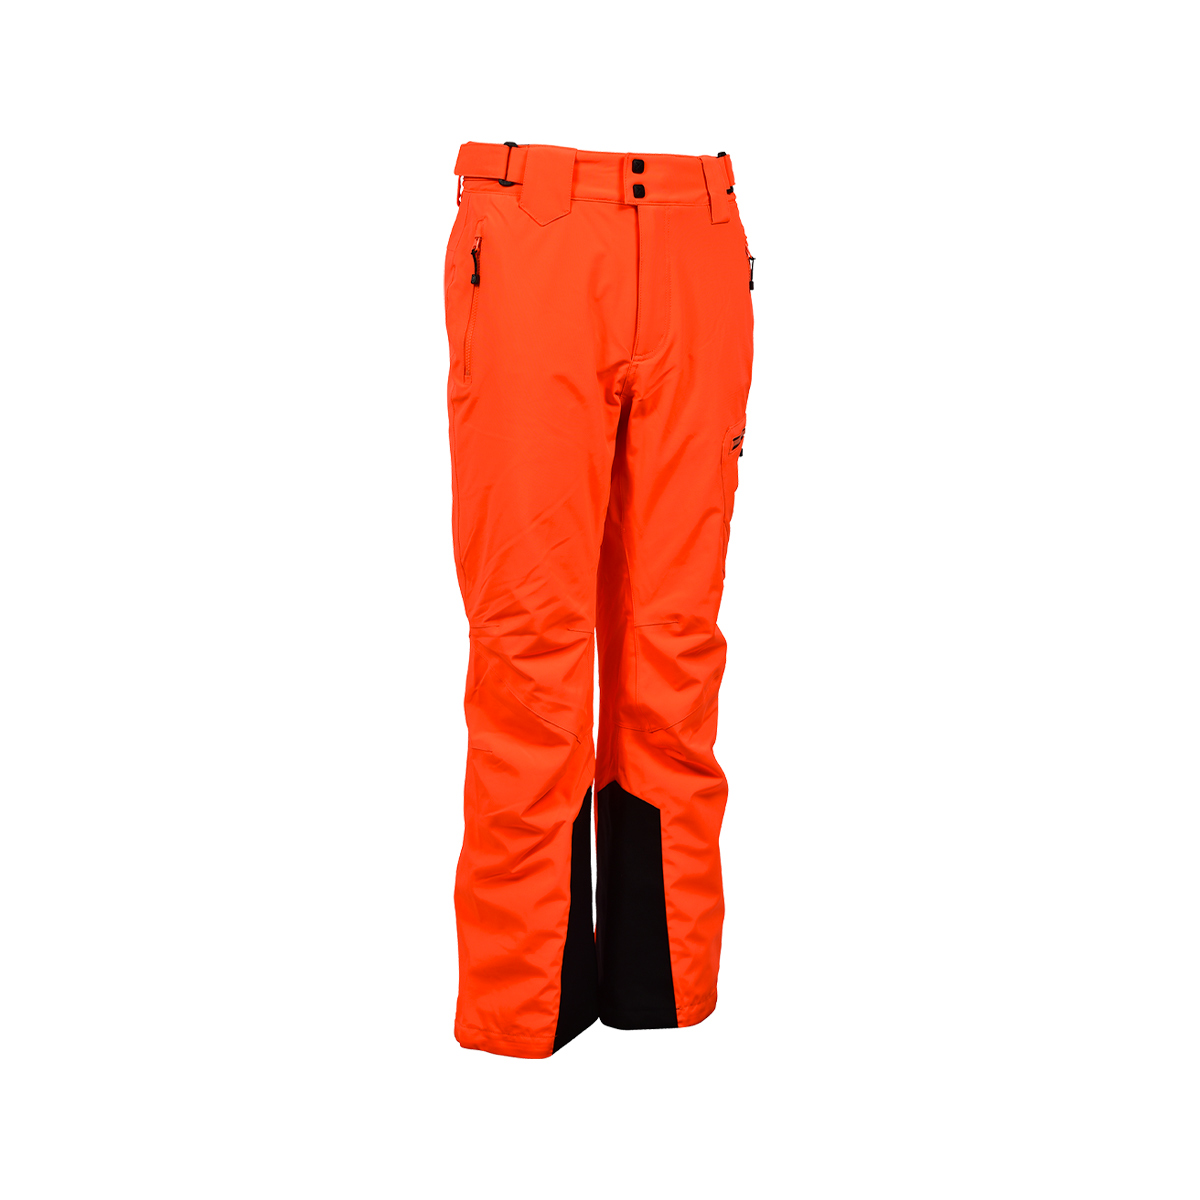 Pantalon de ski homme GOSTT 2.0 - Orange - 8556